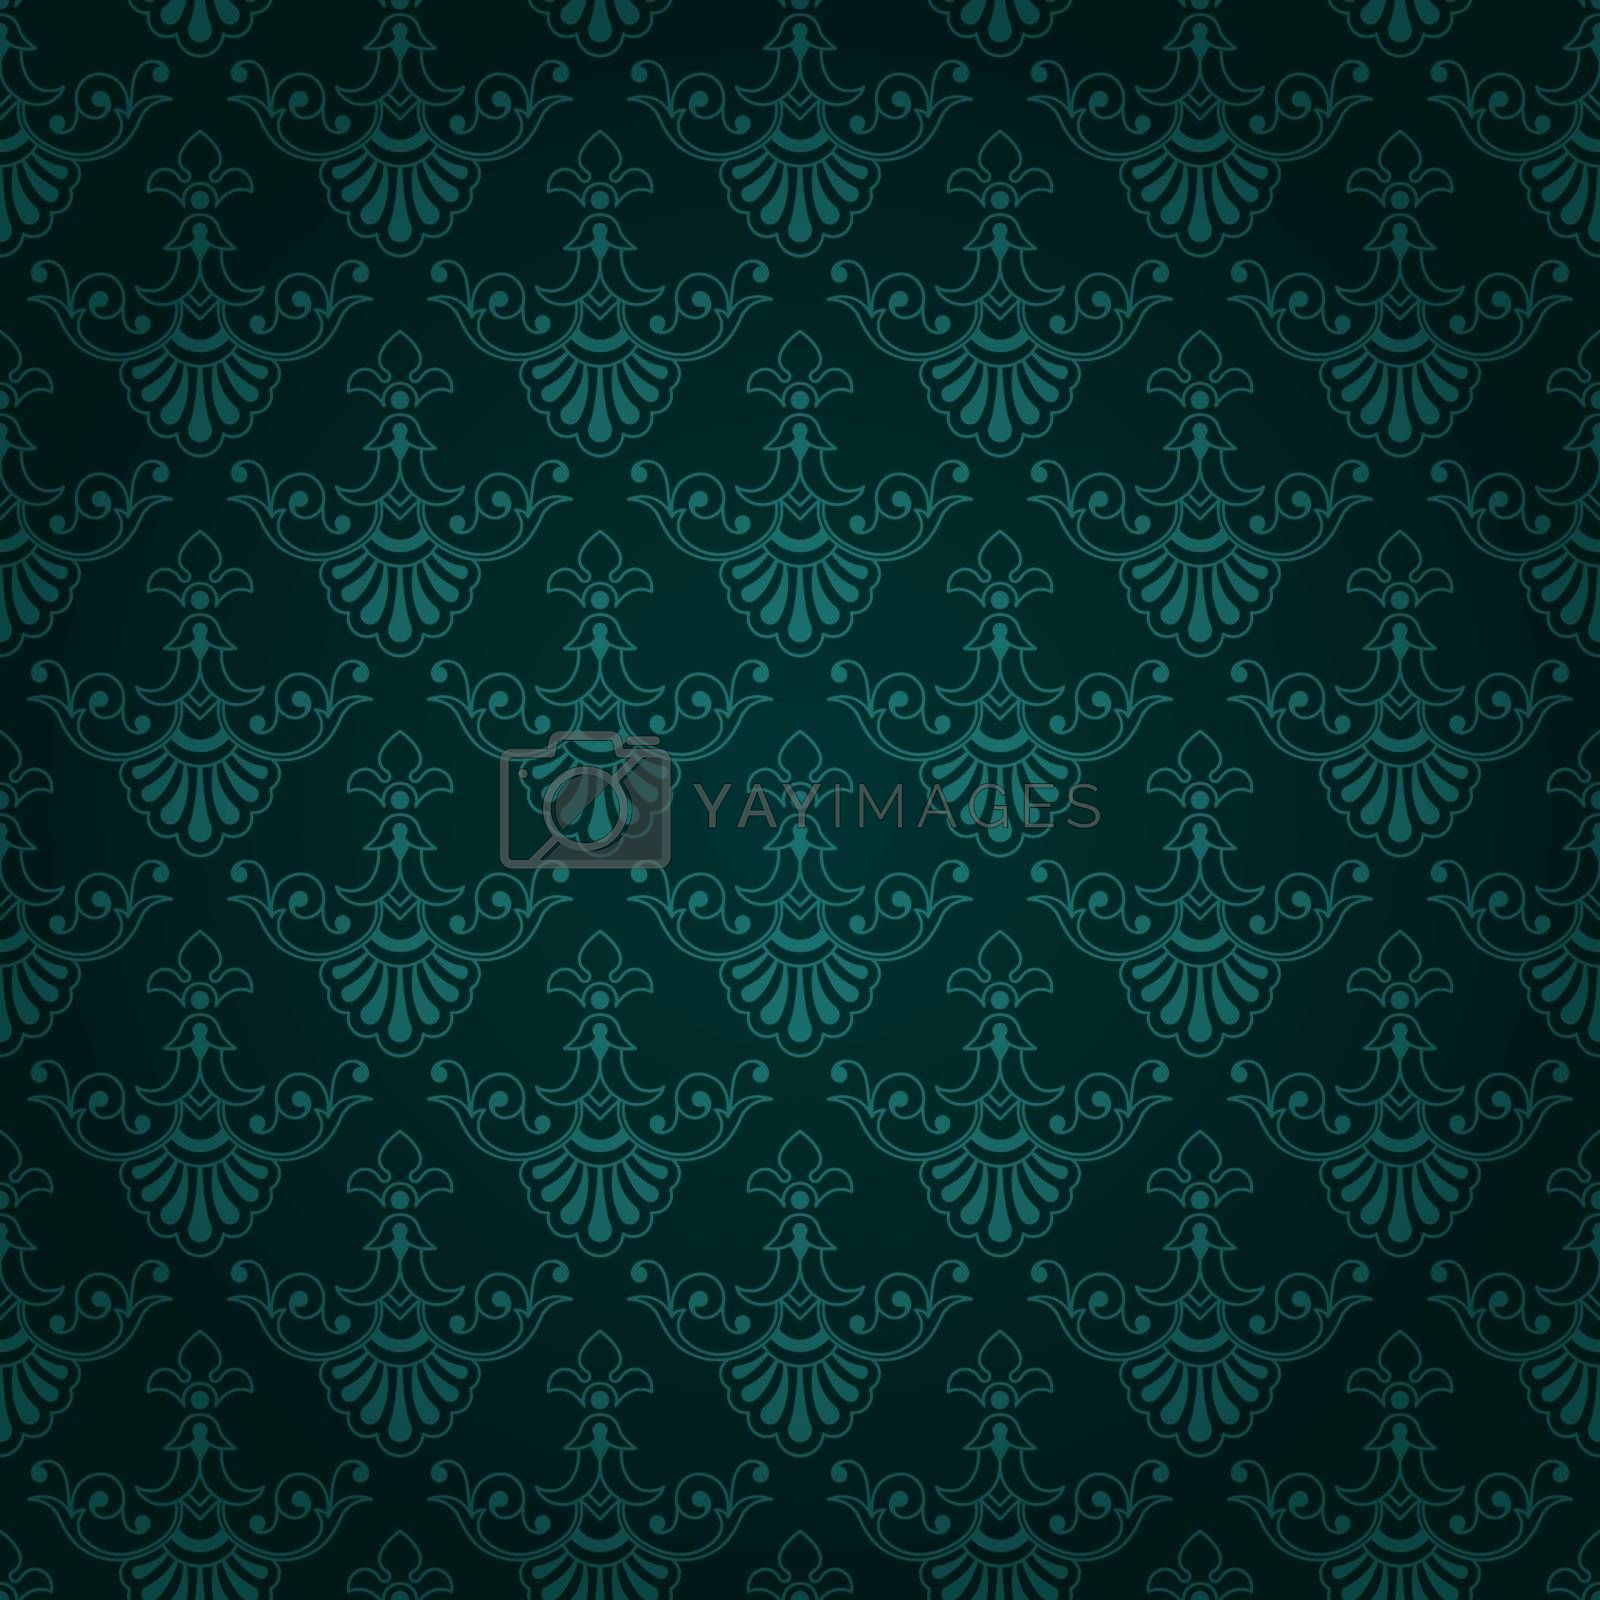 Beautiful dark bluey green seamless tile vintage wallpaper design with floral elements, eps8 vector